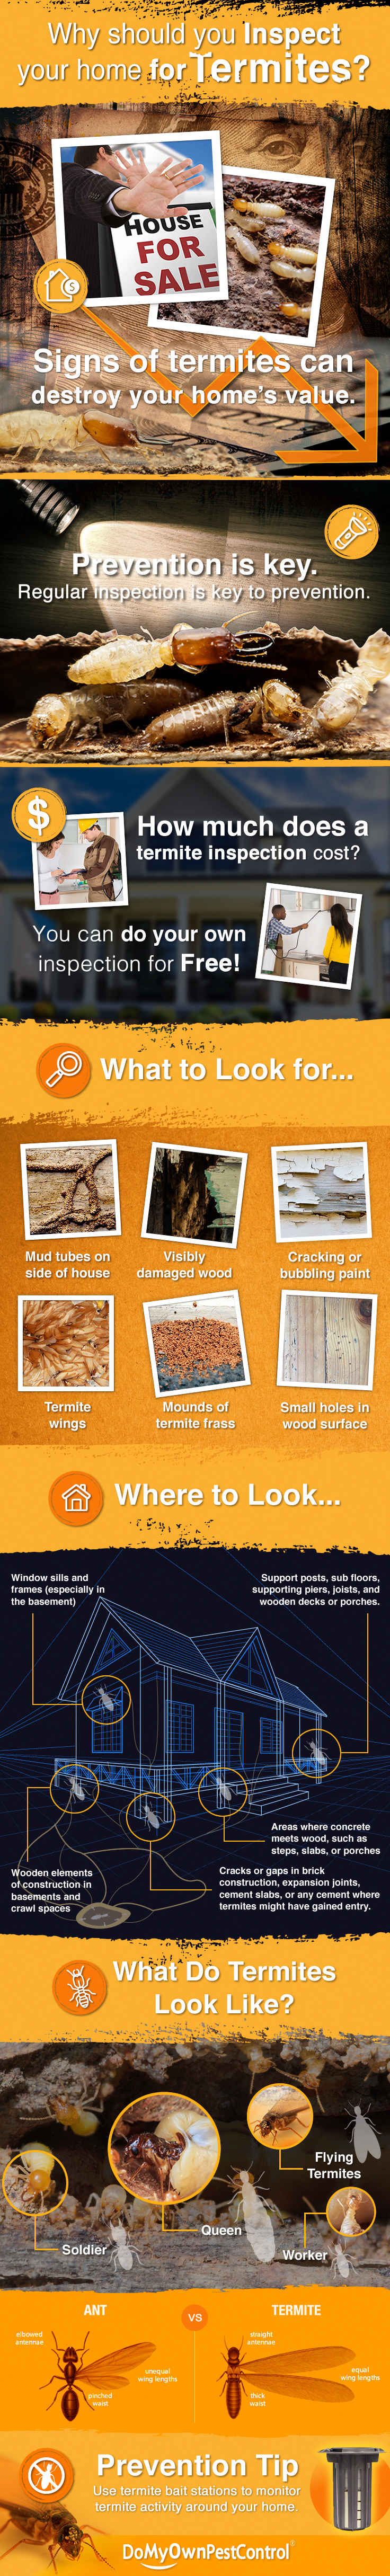 A termite infestation, or even just the signs of termites